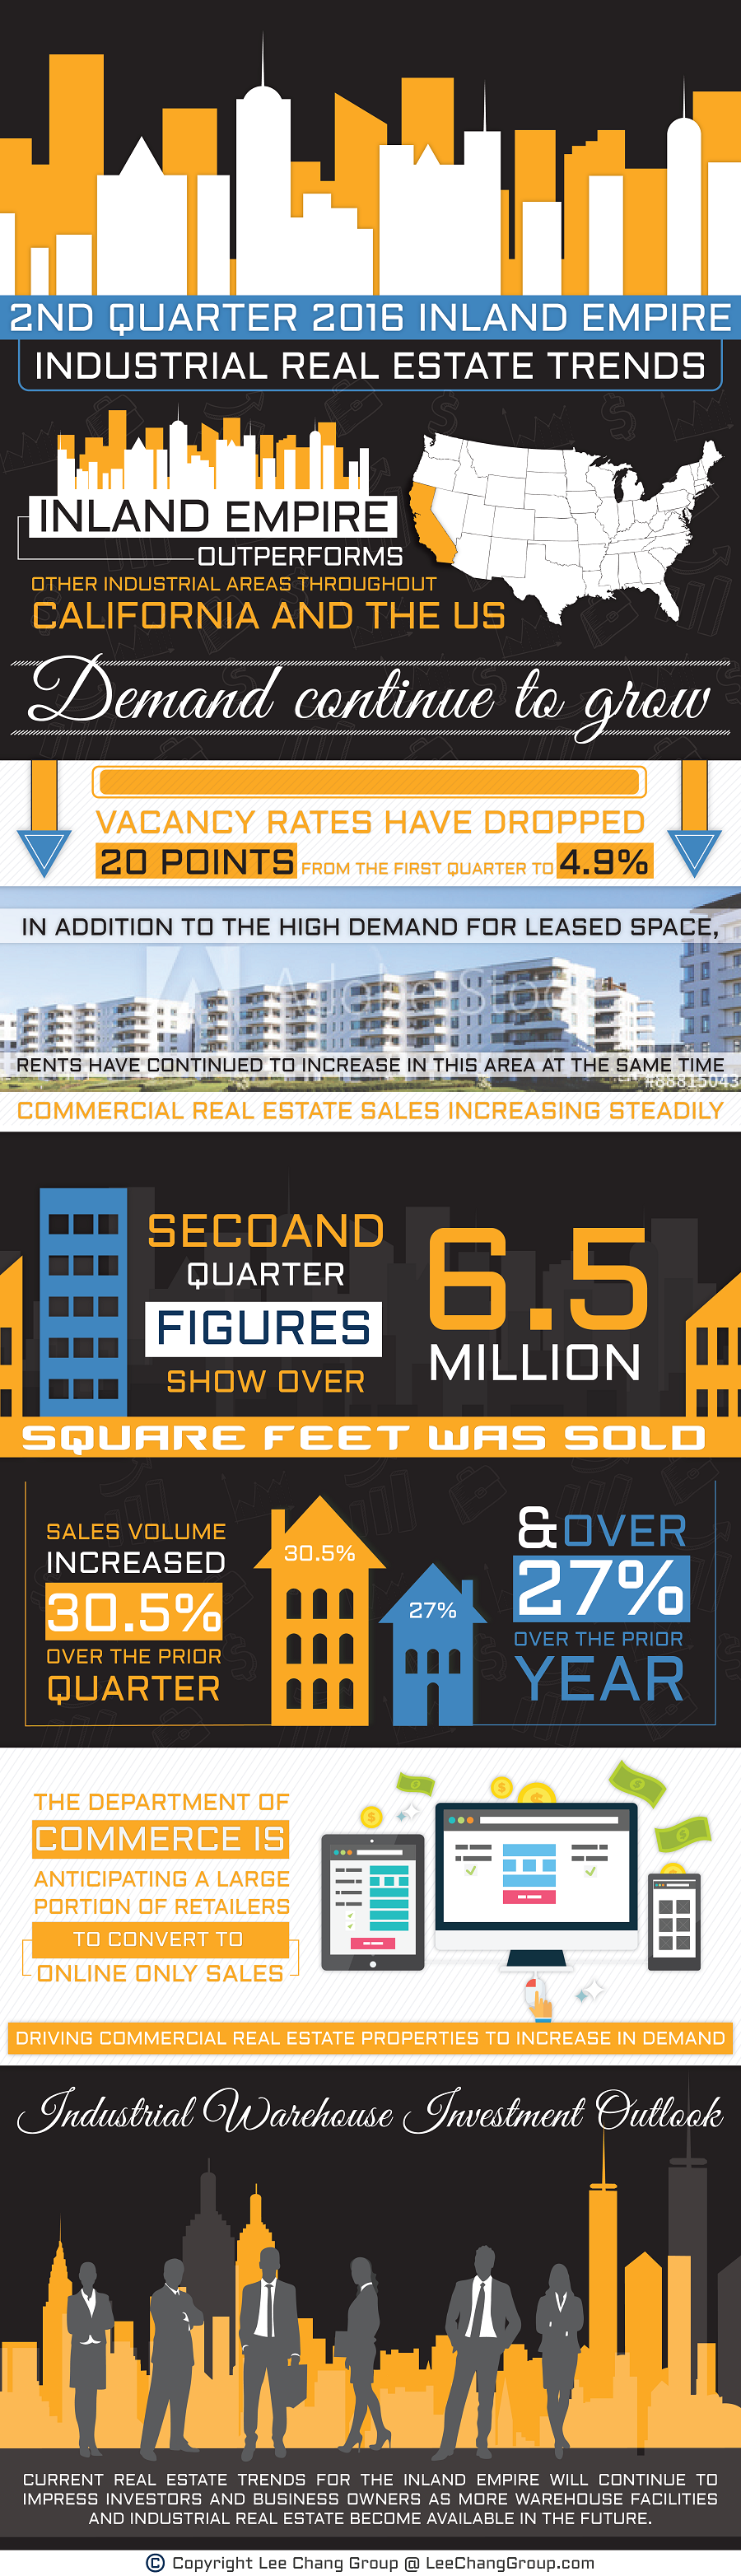 commercial industrial real estate inland empire q2 trends infographics industrial real estate agents companies